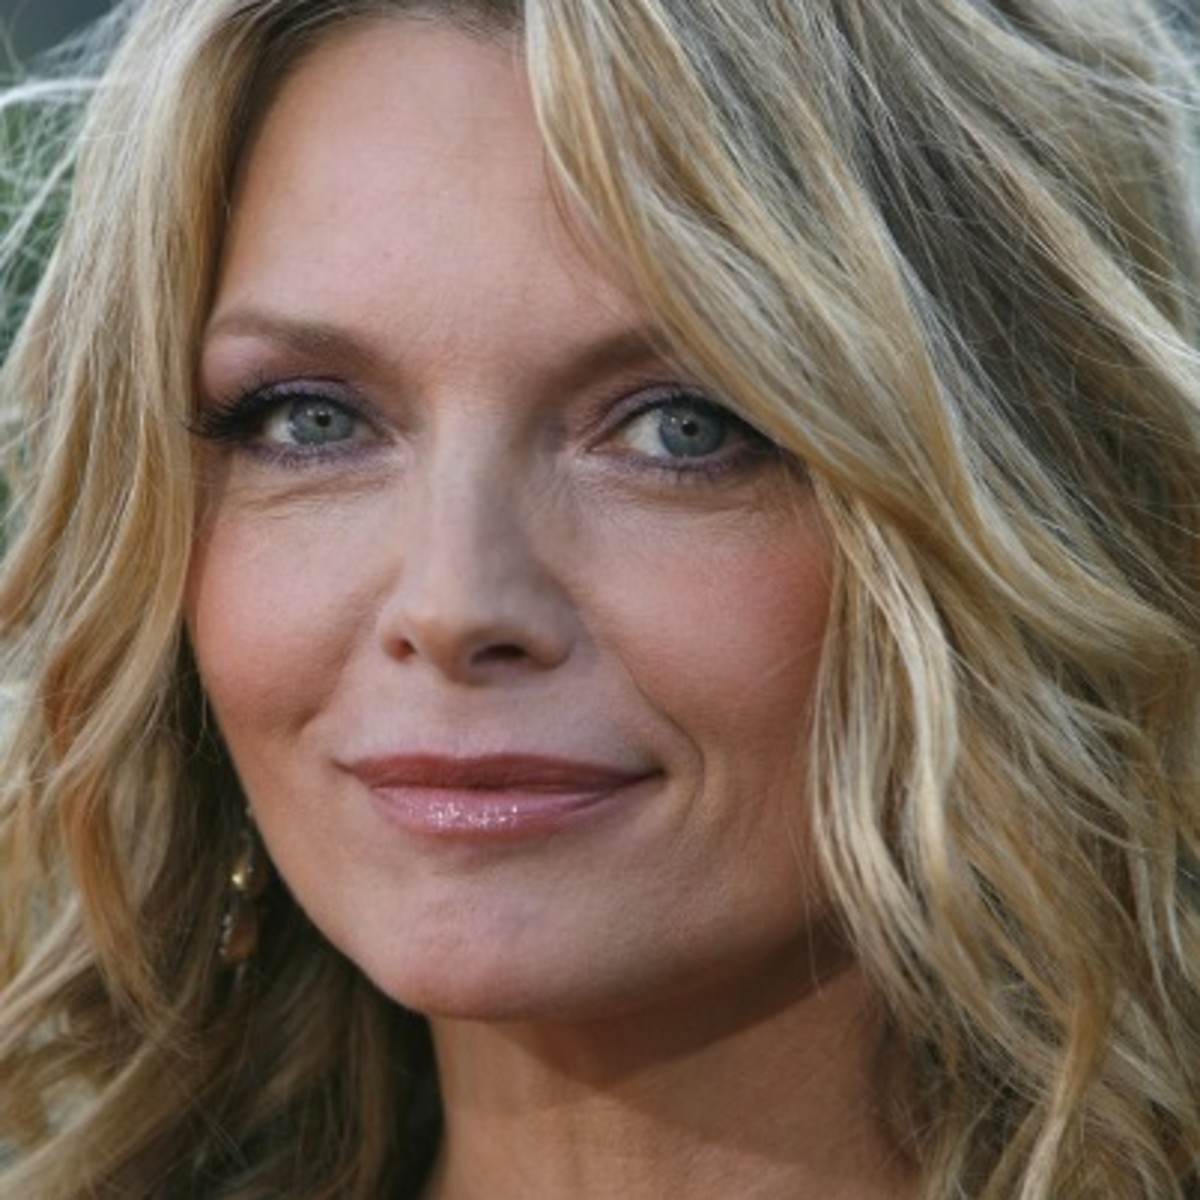 Boobs Images Michelle Pfeiffer naked photo 2017